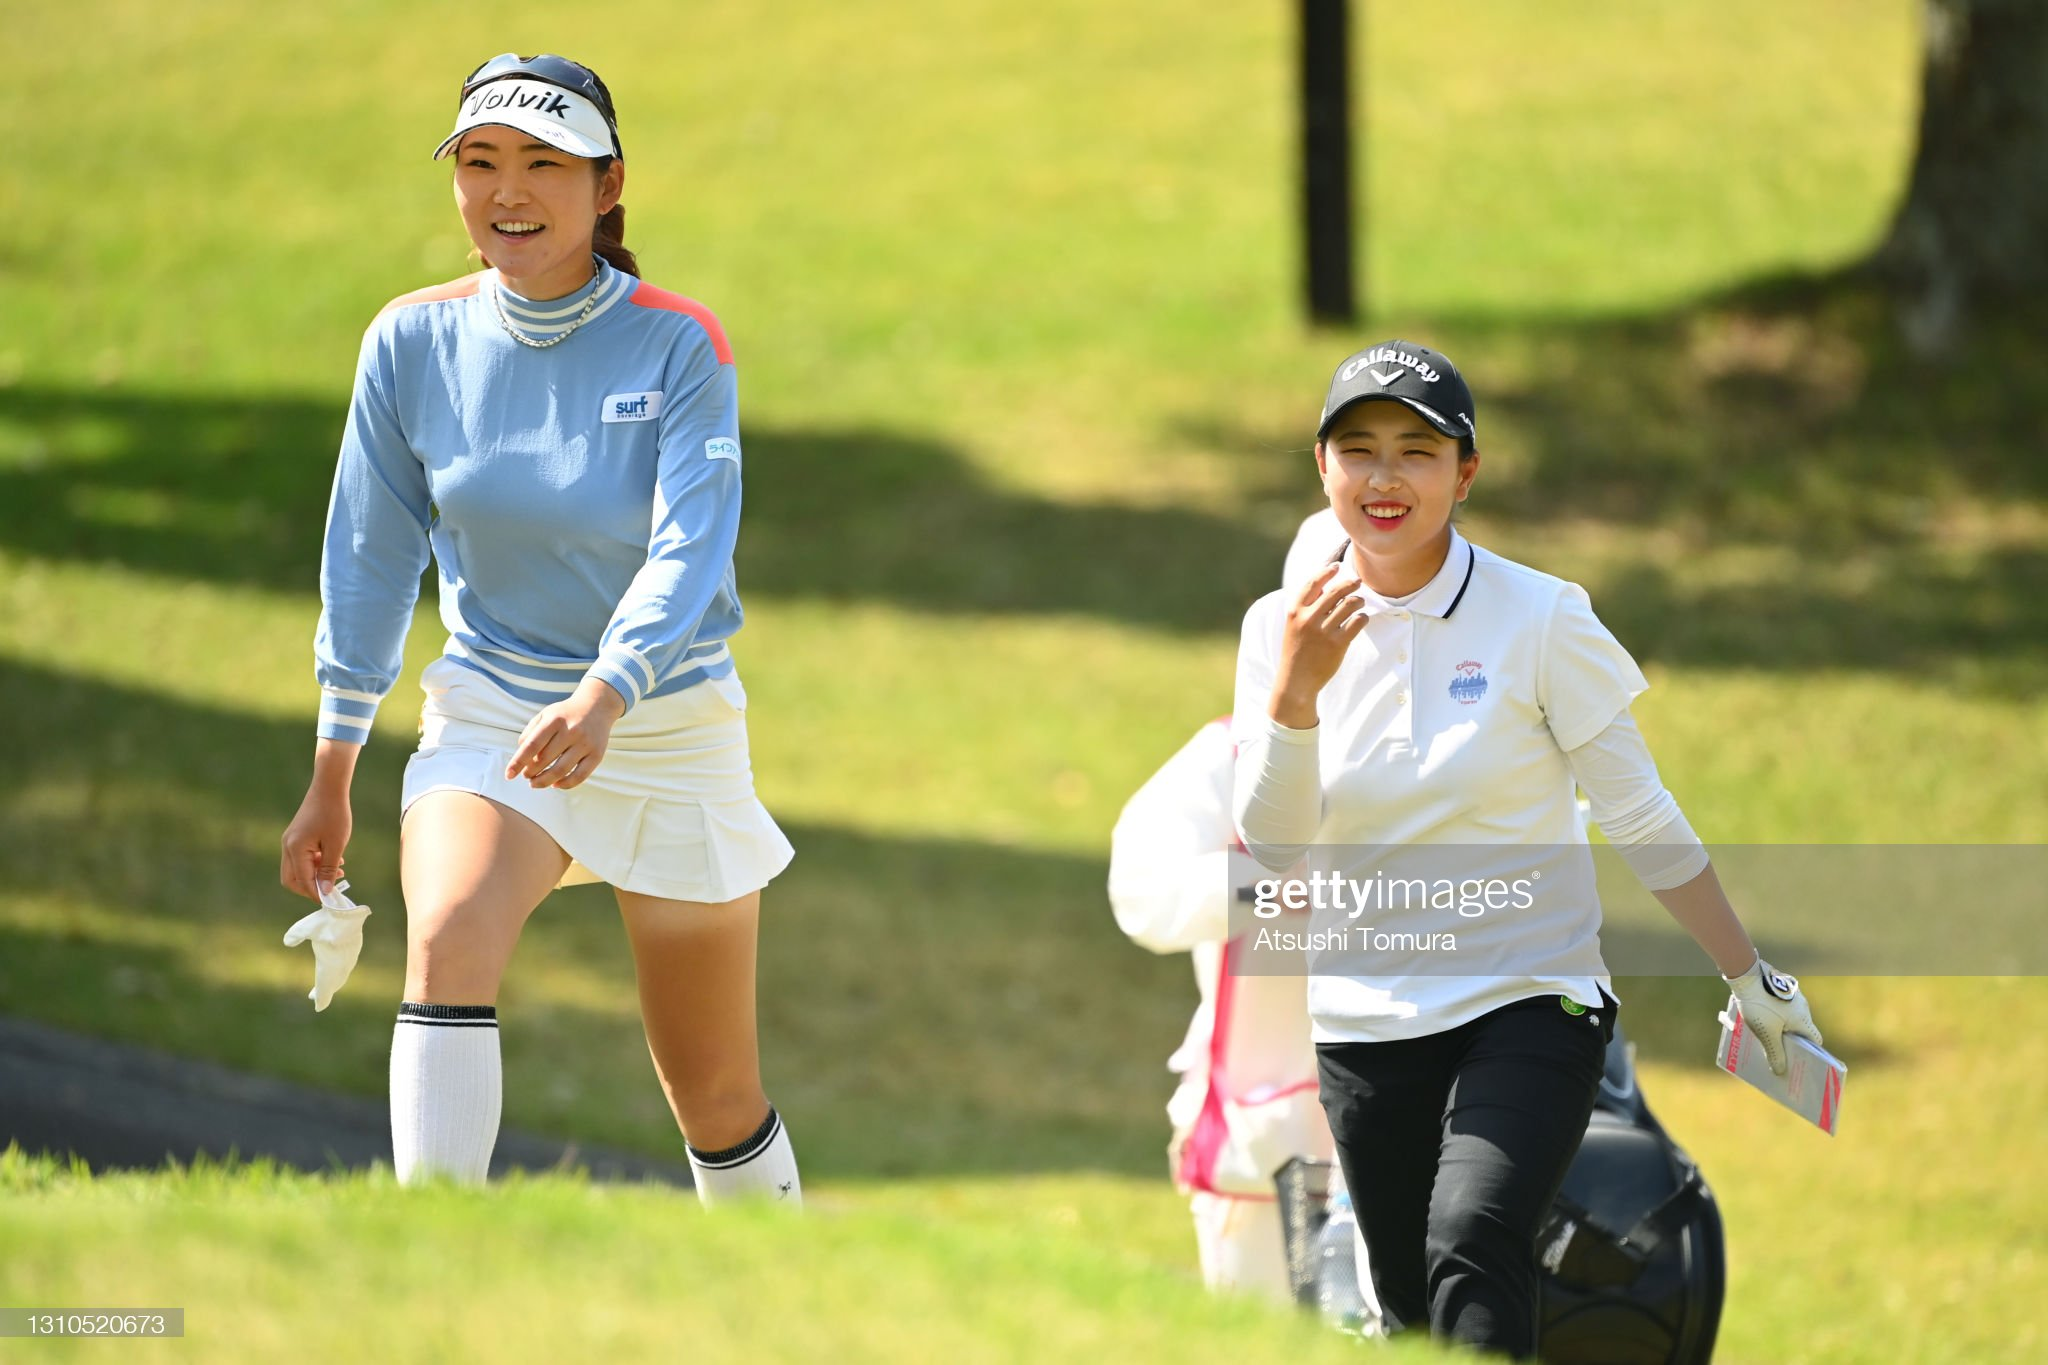 https://media.gettyimages.com/photos/rio-ishii-of-japan-and-hana-lee-of-south-korea-share-a-laugh-on-their-picture-id1310520673?s=2048x2048